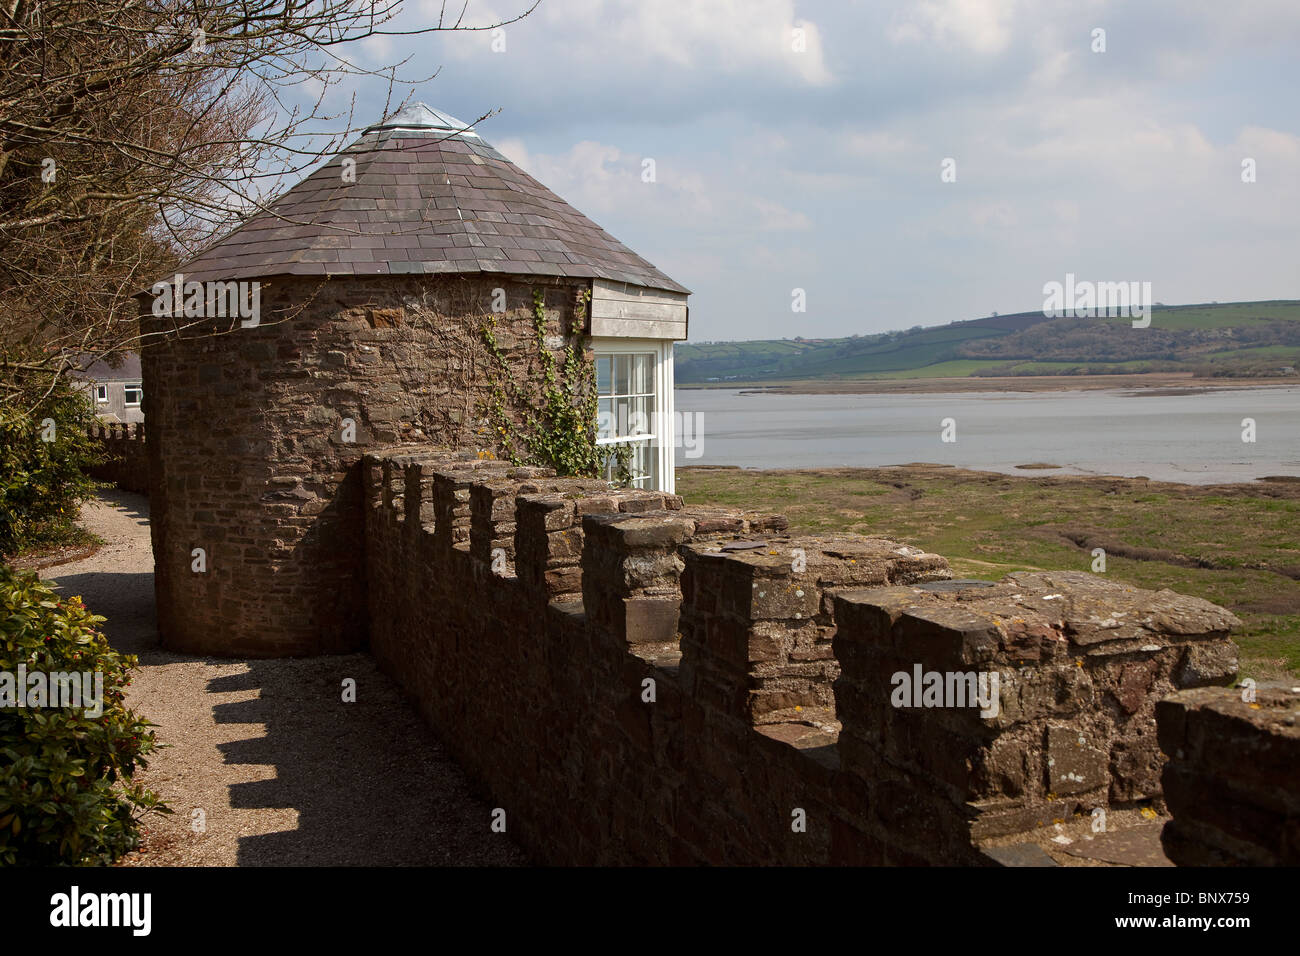 Laugharne castle battlement with summerhouse build into crenellations where Dylan Thomas used to write Wales UK - Stock Image